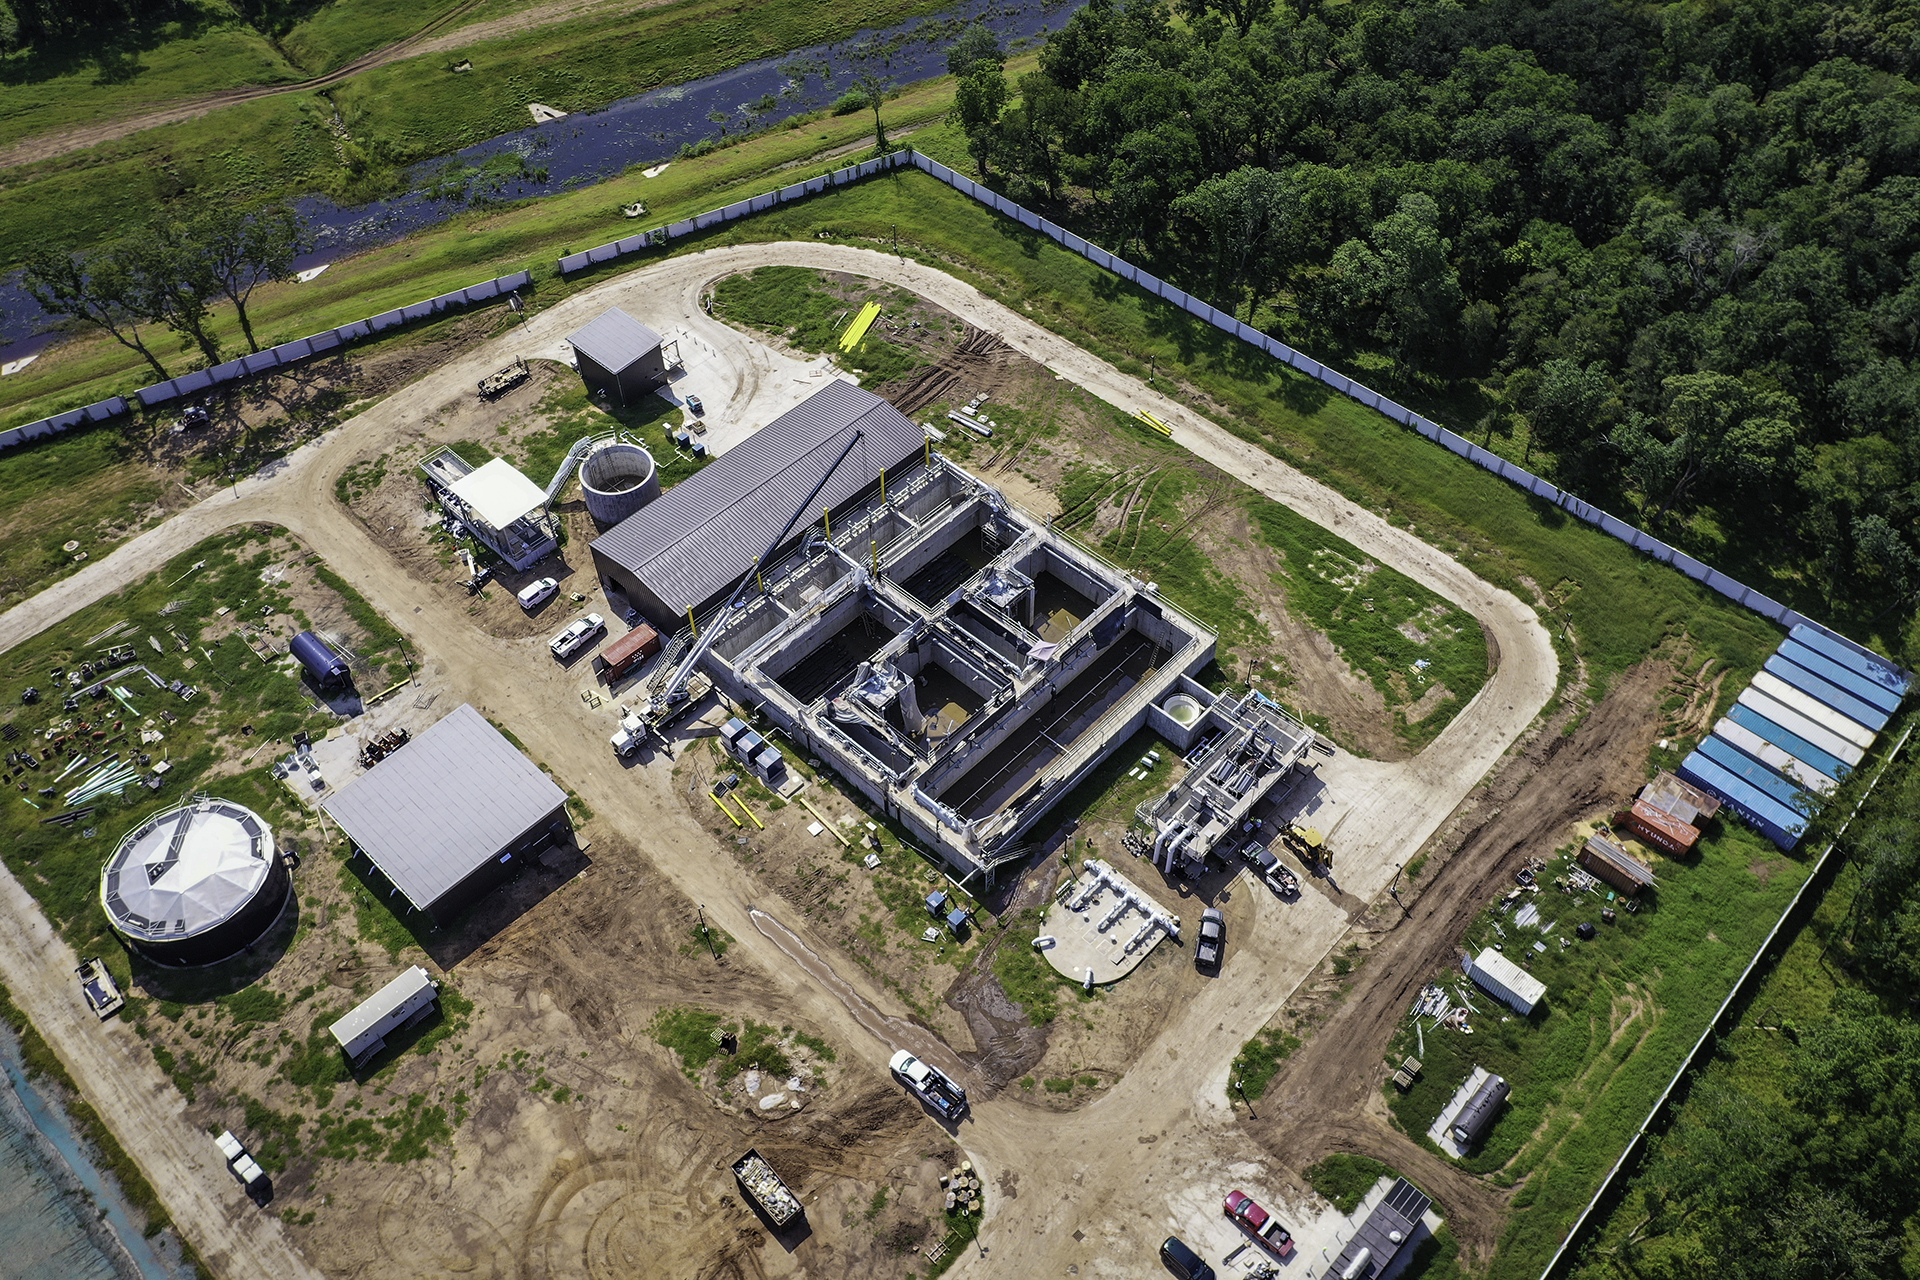 Sienna Plantation Wastewater System - Costello Engineering Project for wastewater, construction+management+services,